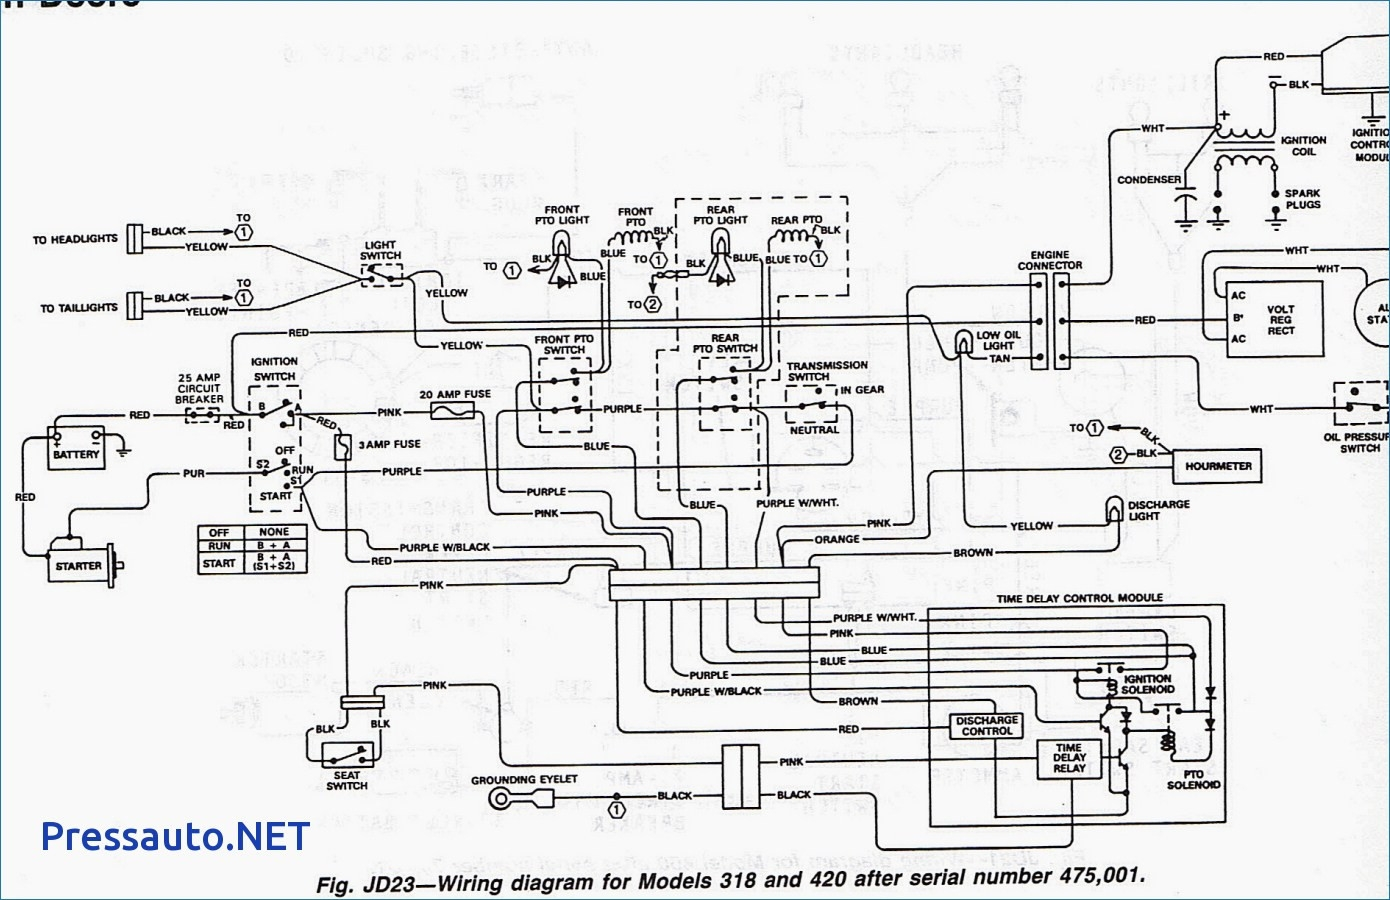 wiring diagram for 720 john deere tractor john deere wire diagram dat wiring diagrams  john deere wire diagram dat wiring